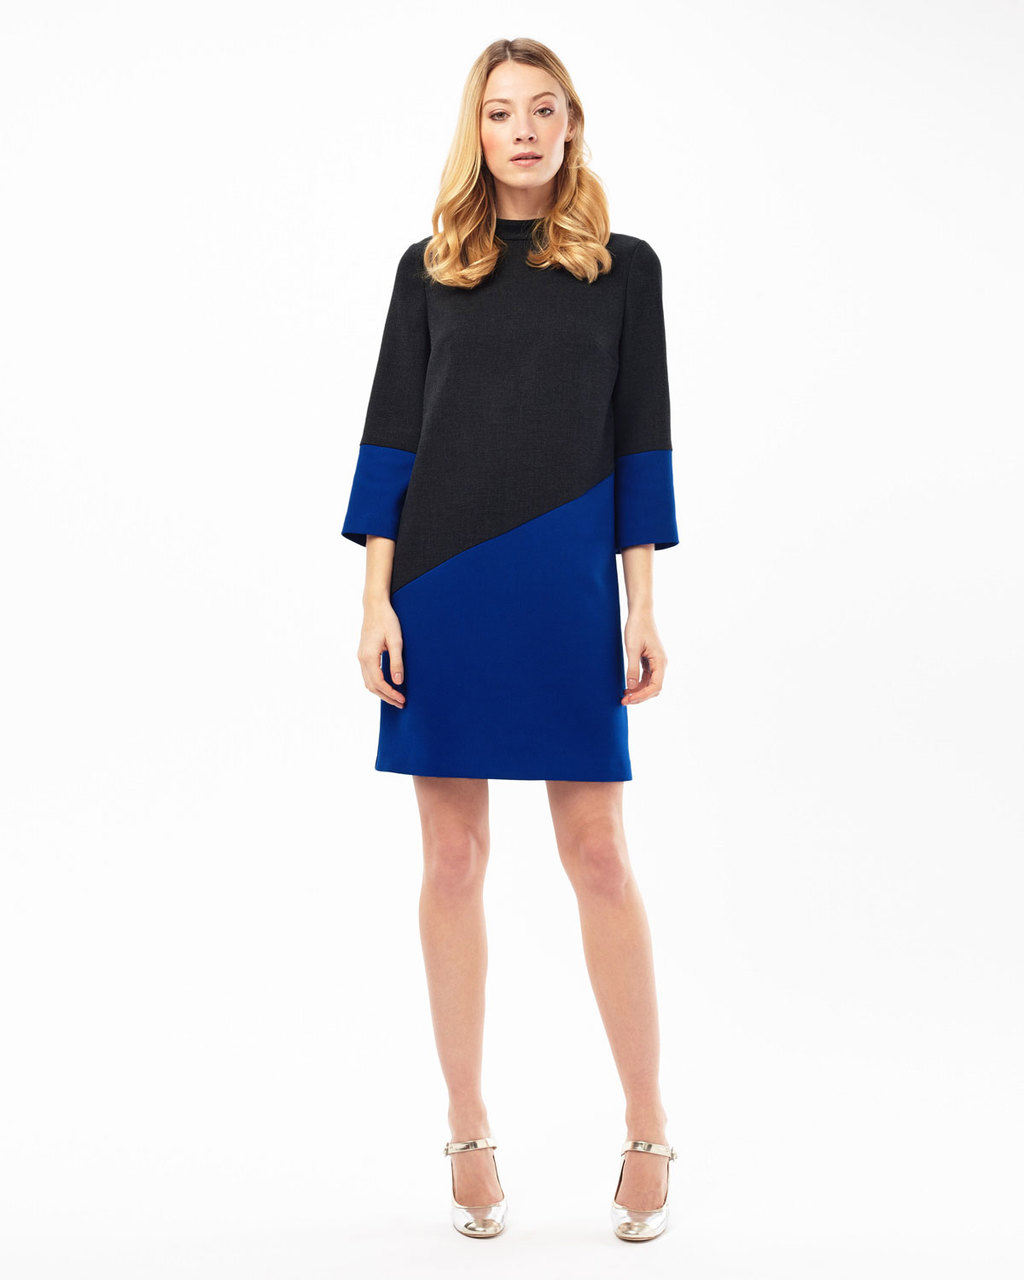 Tina Colourblock Dress - style: shift; length: mid thigh; neckline: high neck; secondary colour: royal blue; predominant colour: black; fit: soft a-line; fibres: polyester/polyamide - stretch; occasions: occasion, creative work; sleeve length: 3/4 length; sleeve style: standard; pattern type: fabric; pattern: colourblock; texture group: other - light to midweight; season: s/s 2016